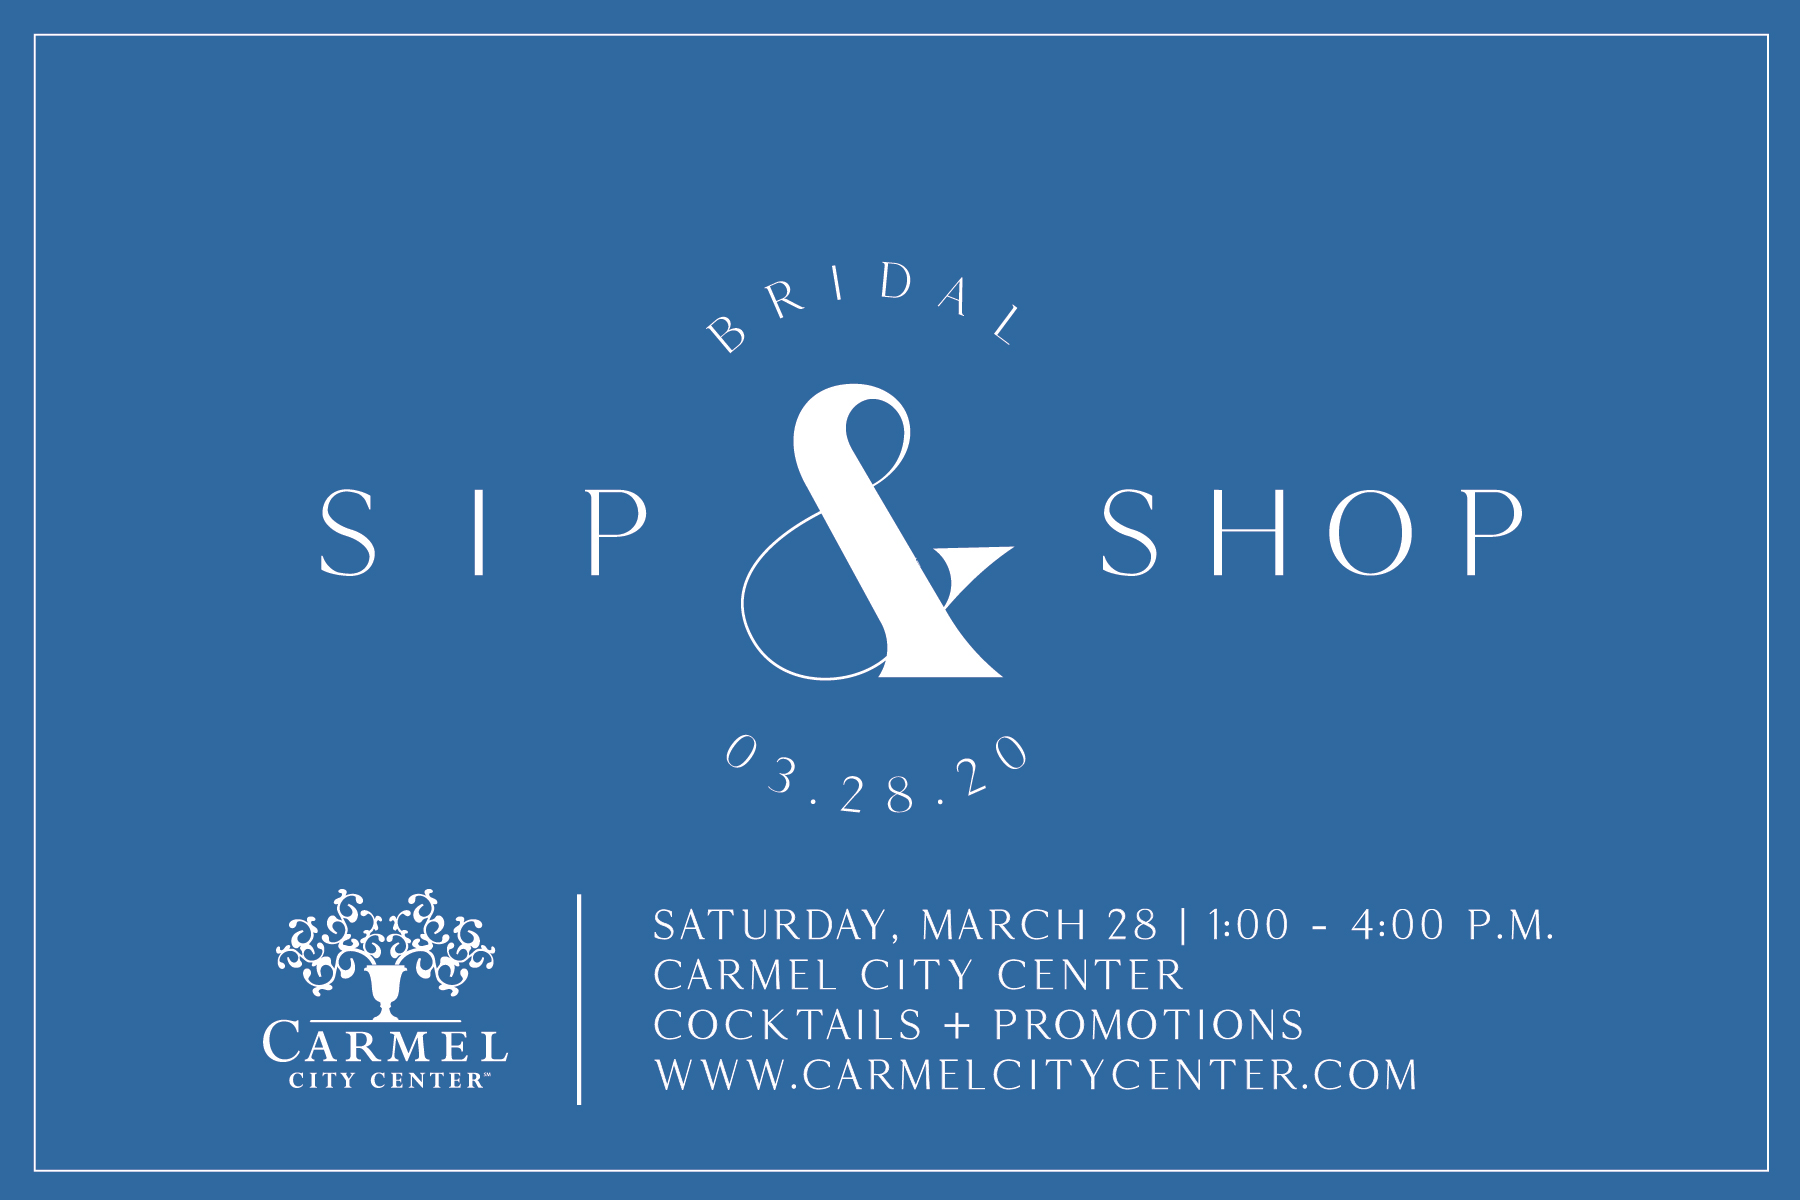 POSTPONED: Bridal Sip & Shop at Carmel City Center